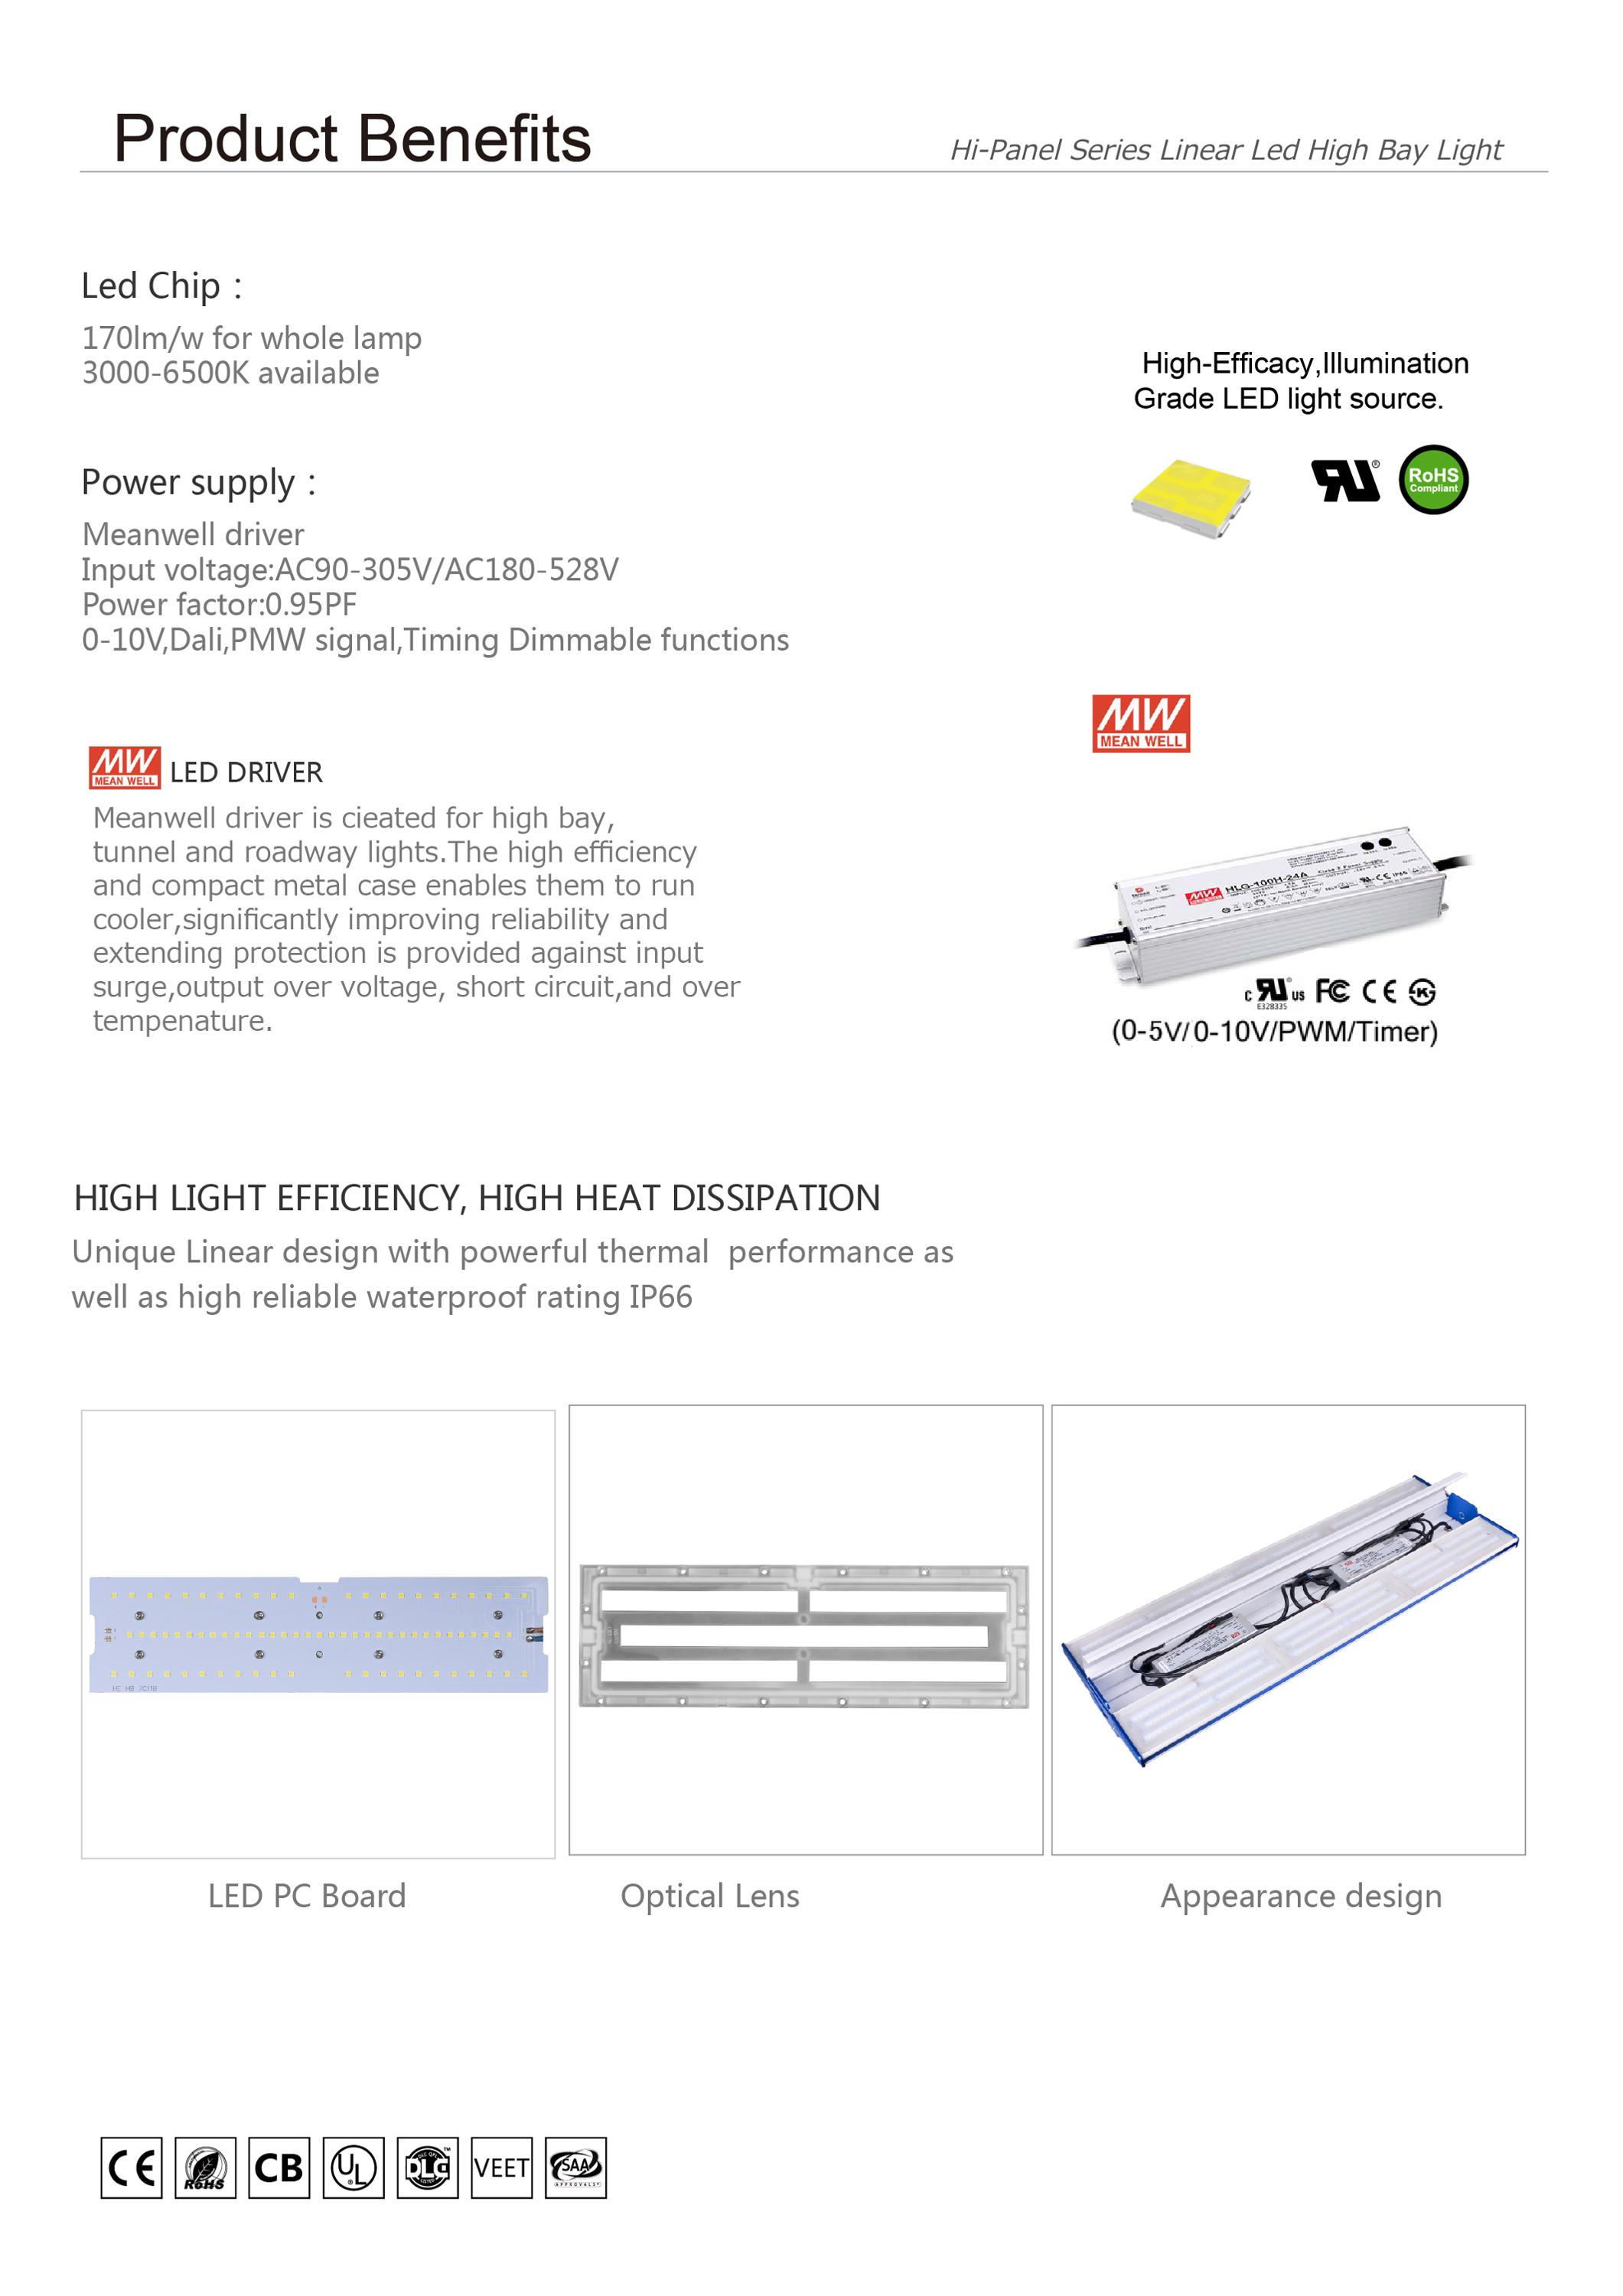 Cheap price Manwell driver SMD chips Linear high bay led lamp 100-500w warehouse garage supermarket school